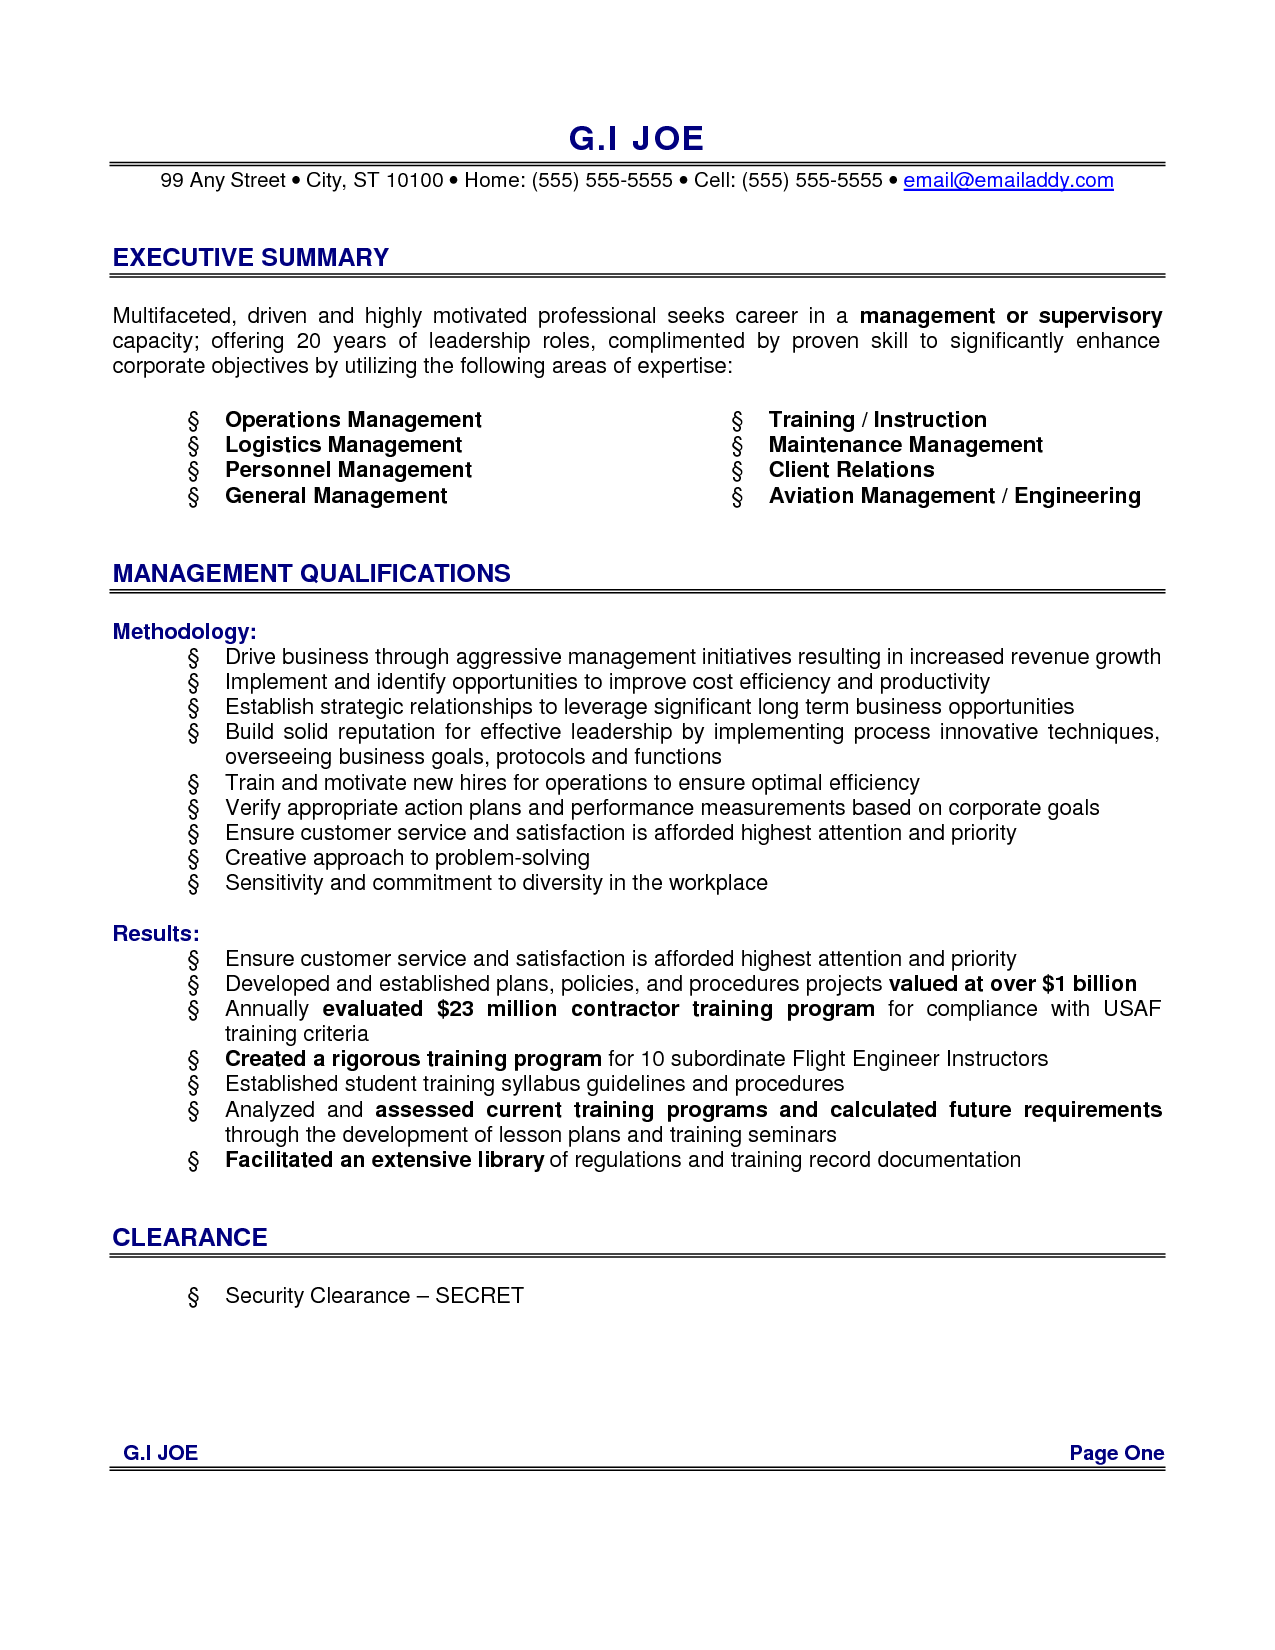 ResumeExamples For Executive Summary With Management Qualifications , Executive Resume Example